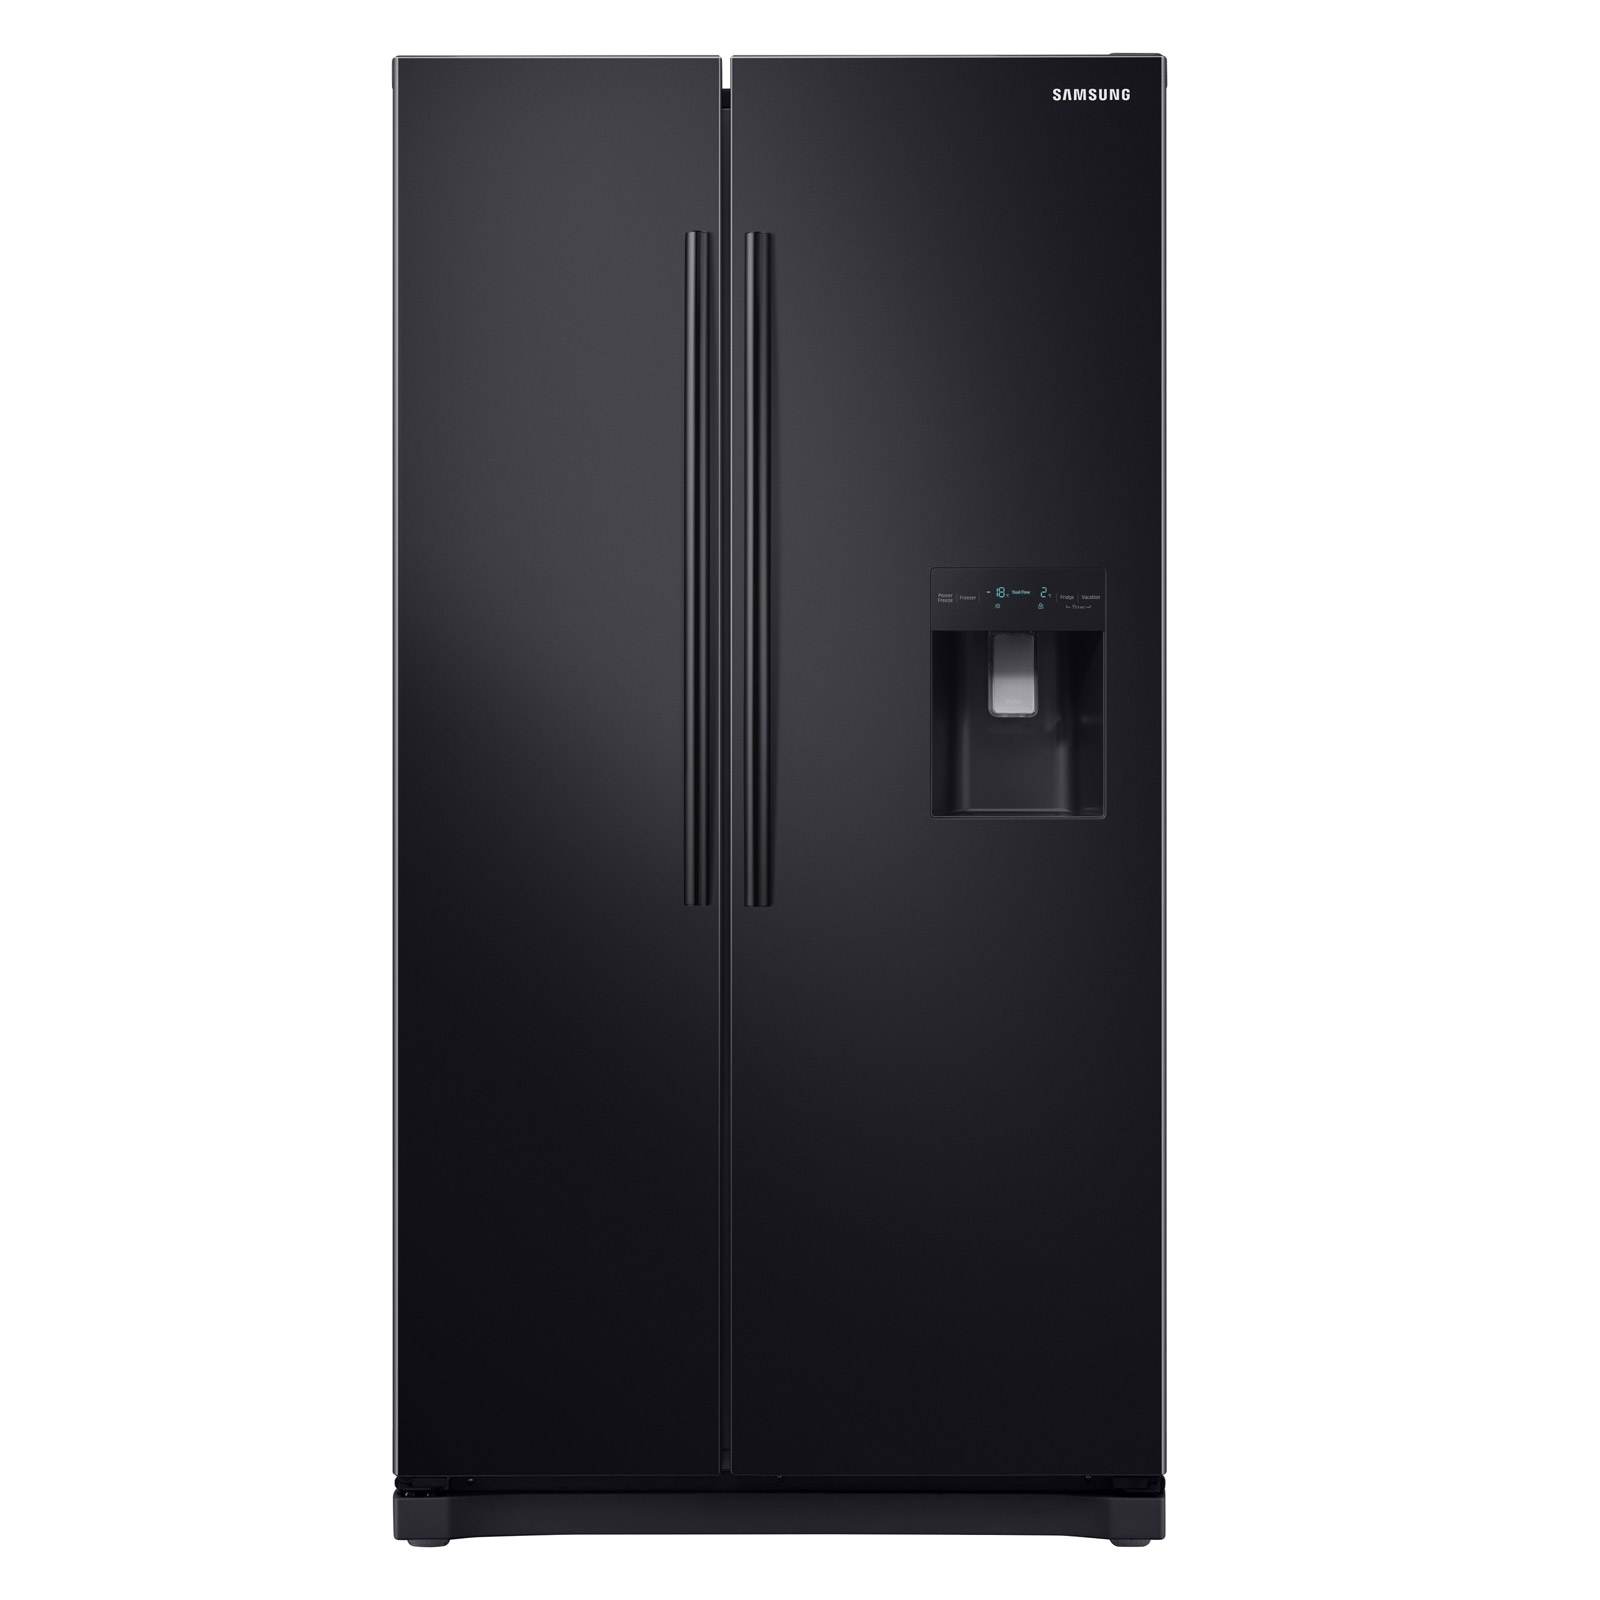 72870e21268c Samsung RS52N3213BC American Fridge Freezer in Black, Water NoFrost A+